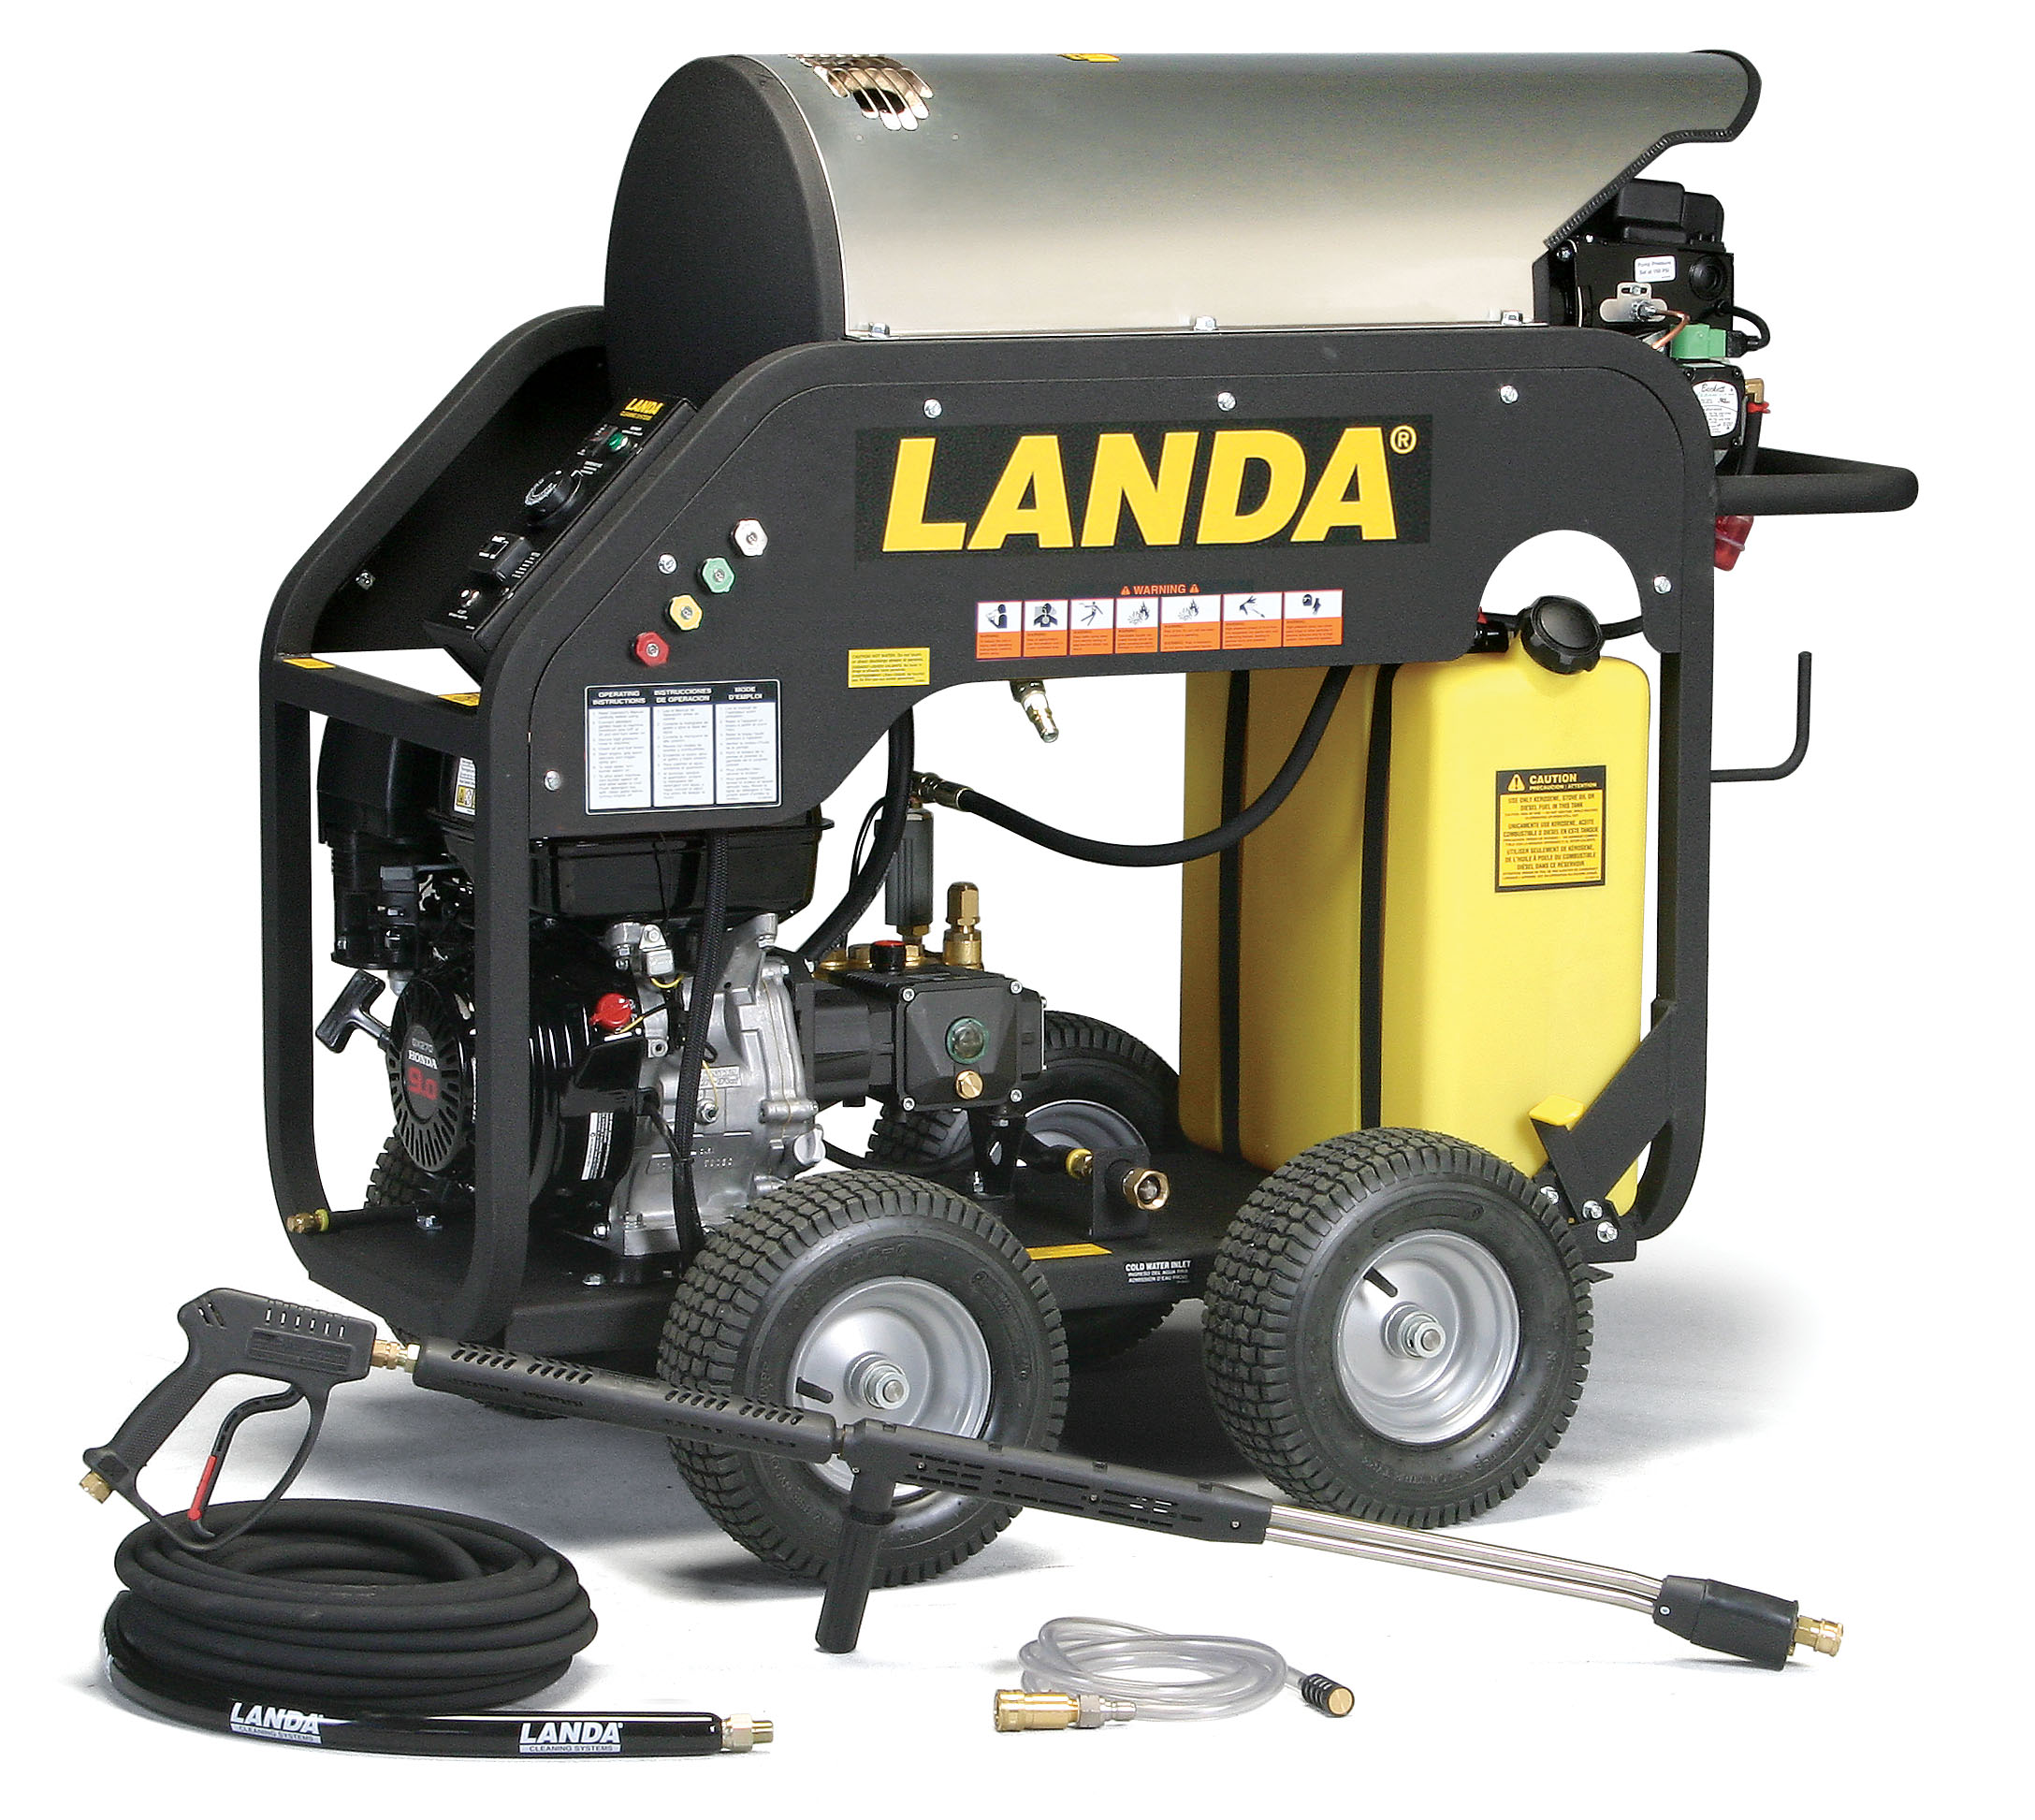 Landa Oil Fired Hot Water Pressure Washer MHC4-30324E/S Keyed Electric Start For High Altitude Applications